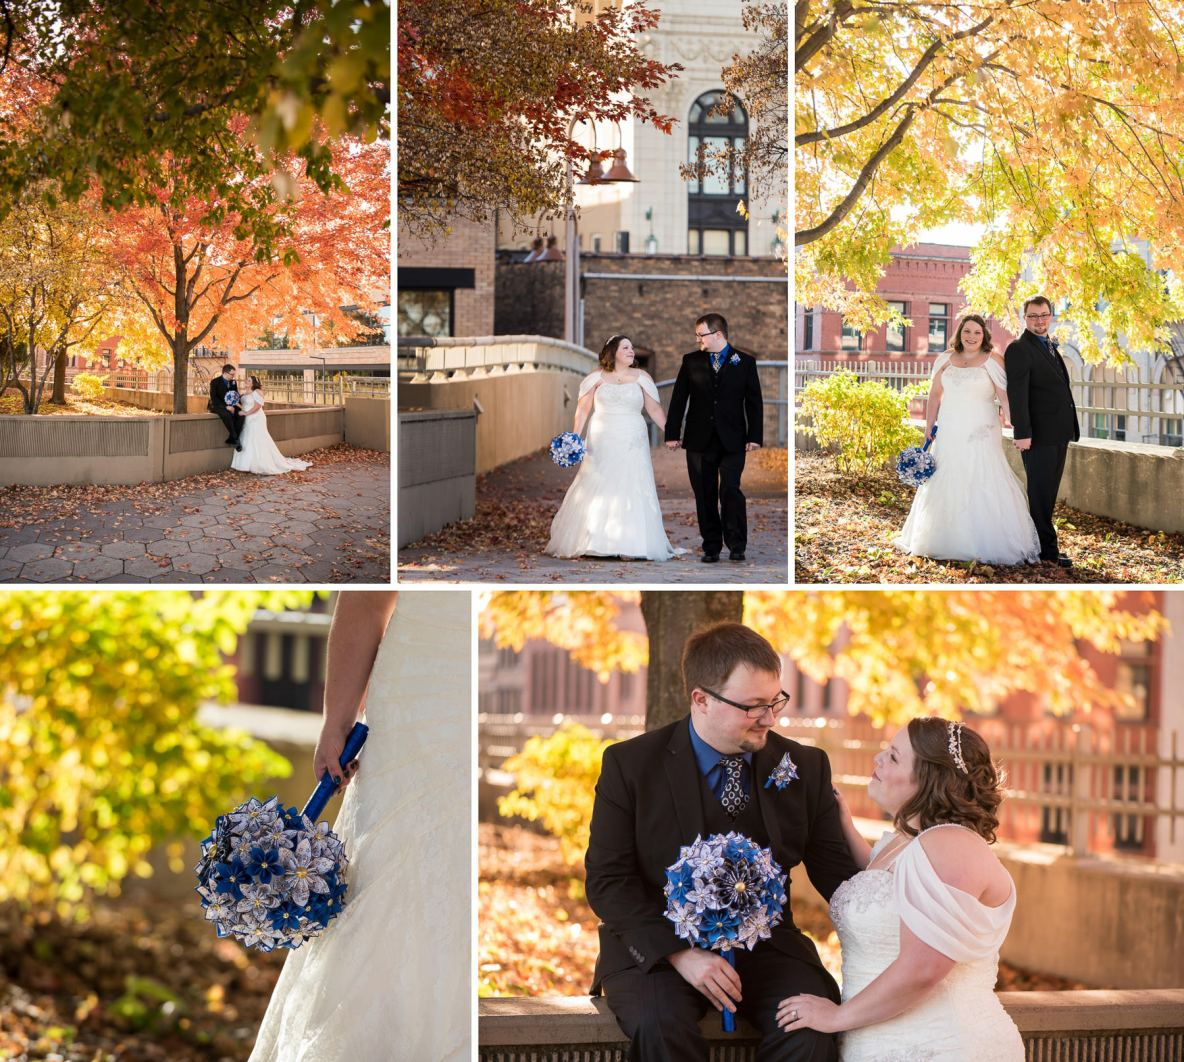 Bride and groom portrait outside in fall colors.